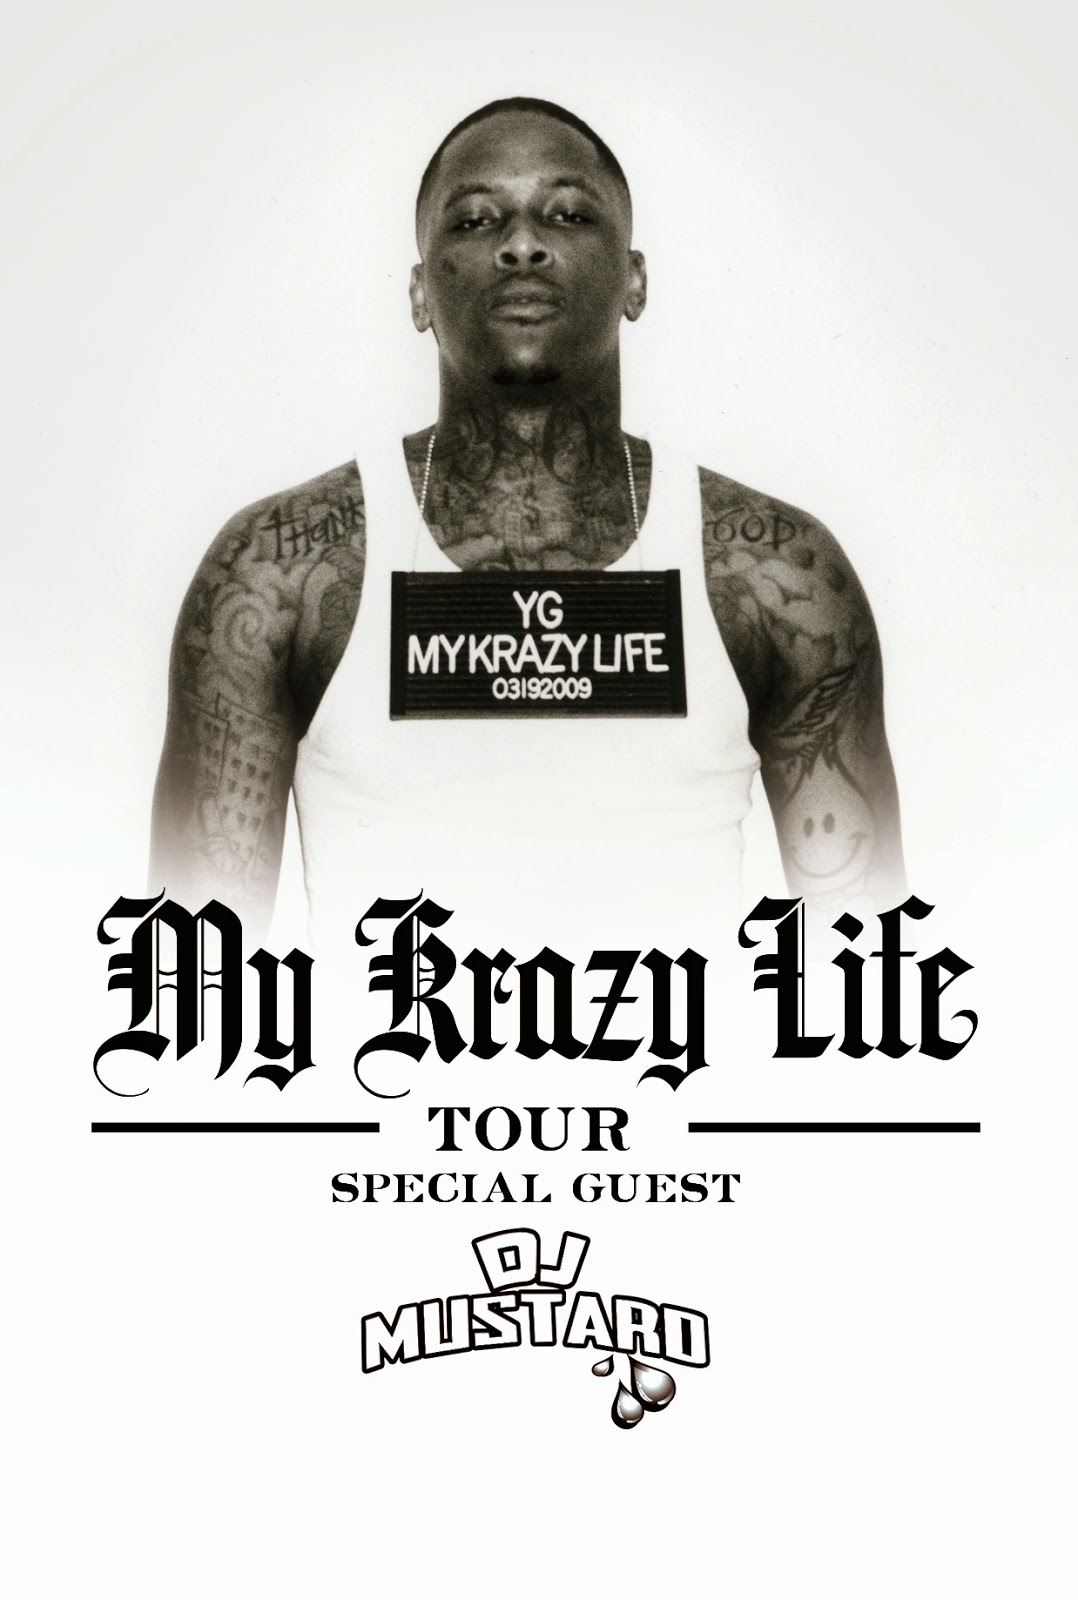 Yg my krazy life free download zip | innovation policy platform.